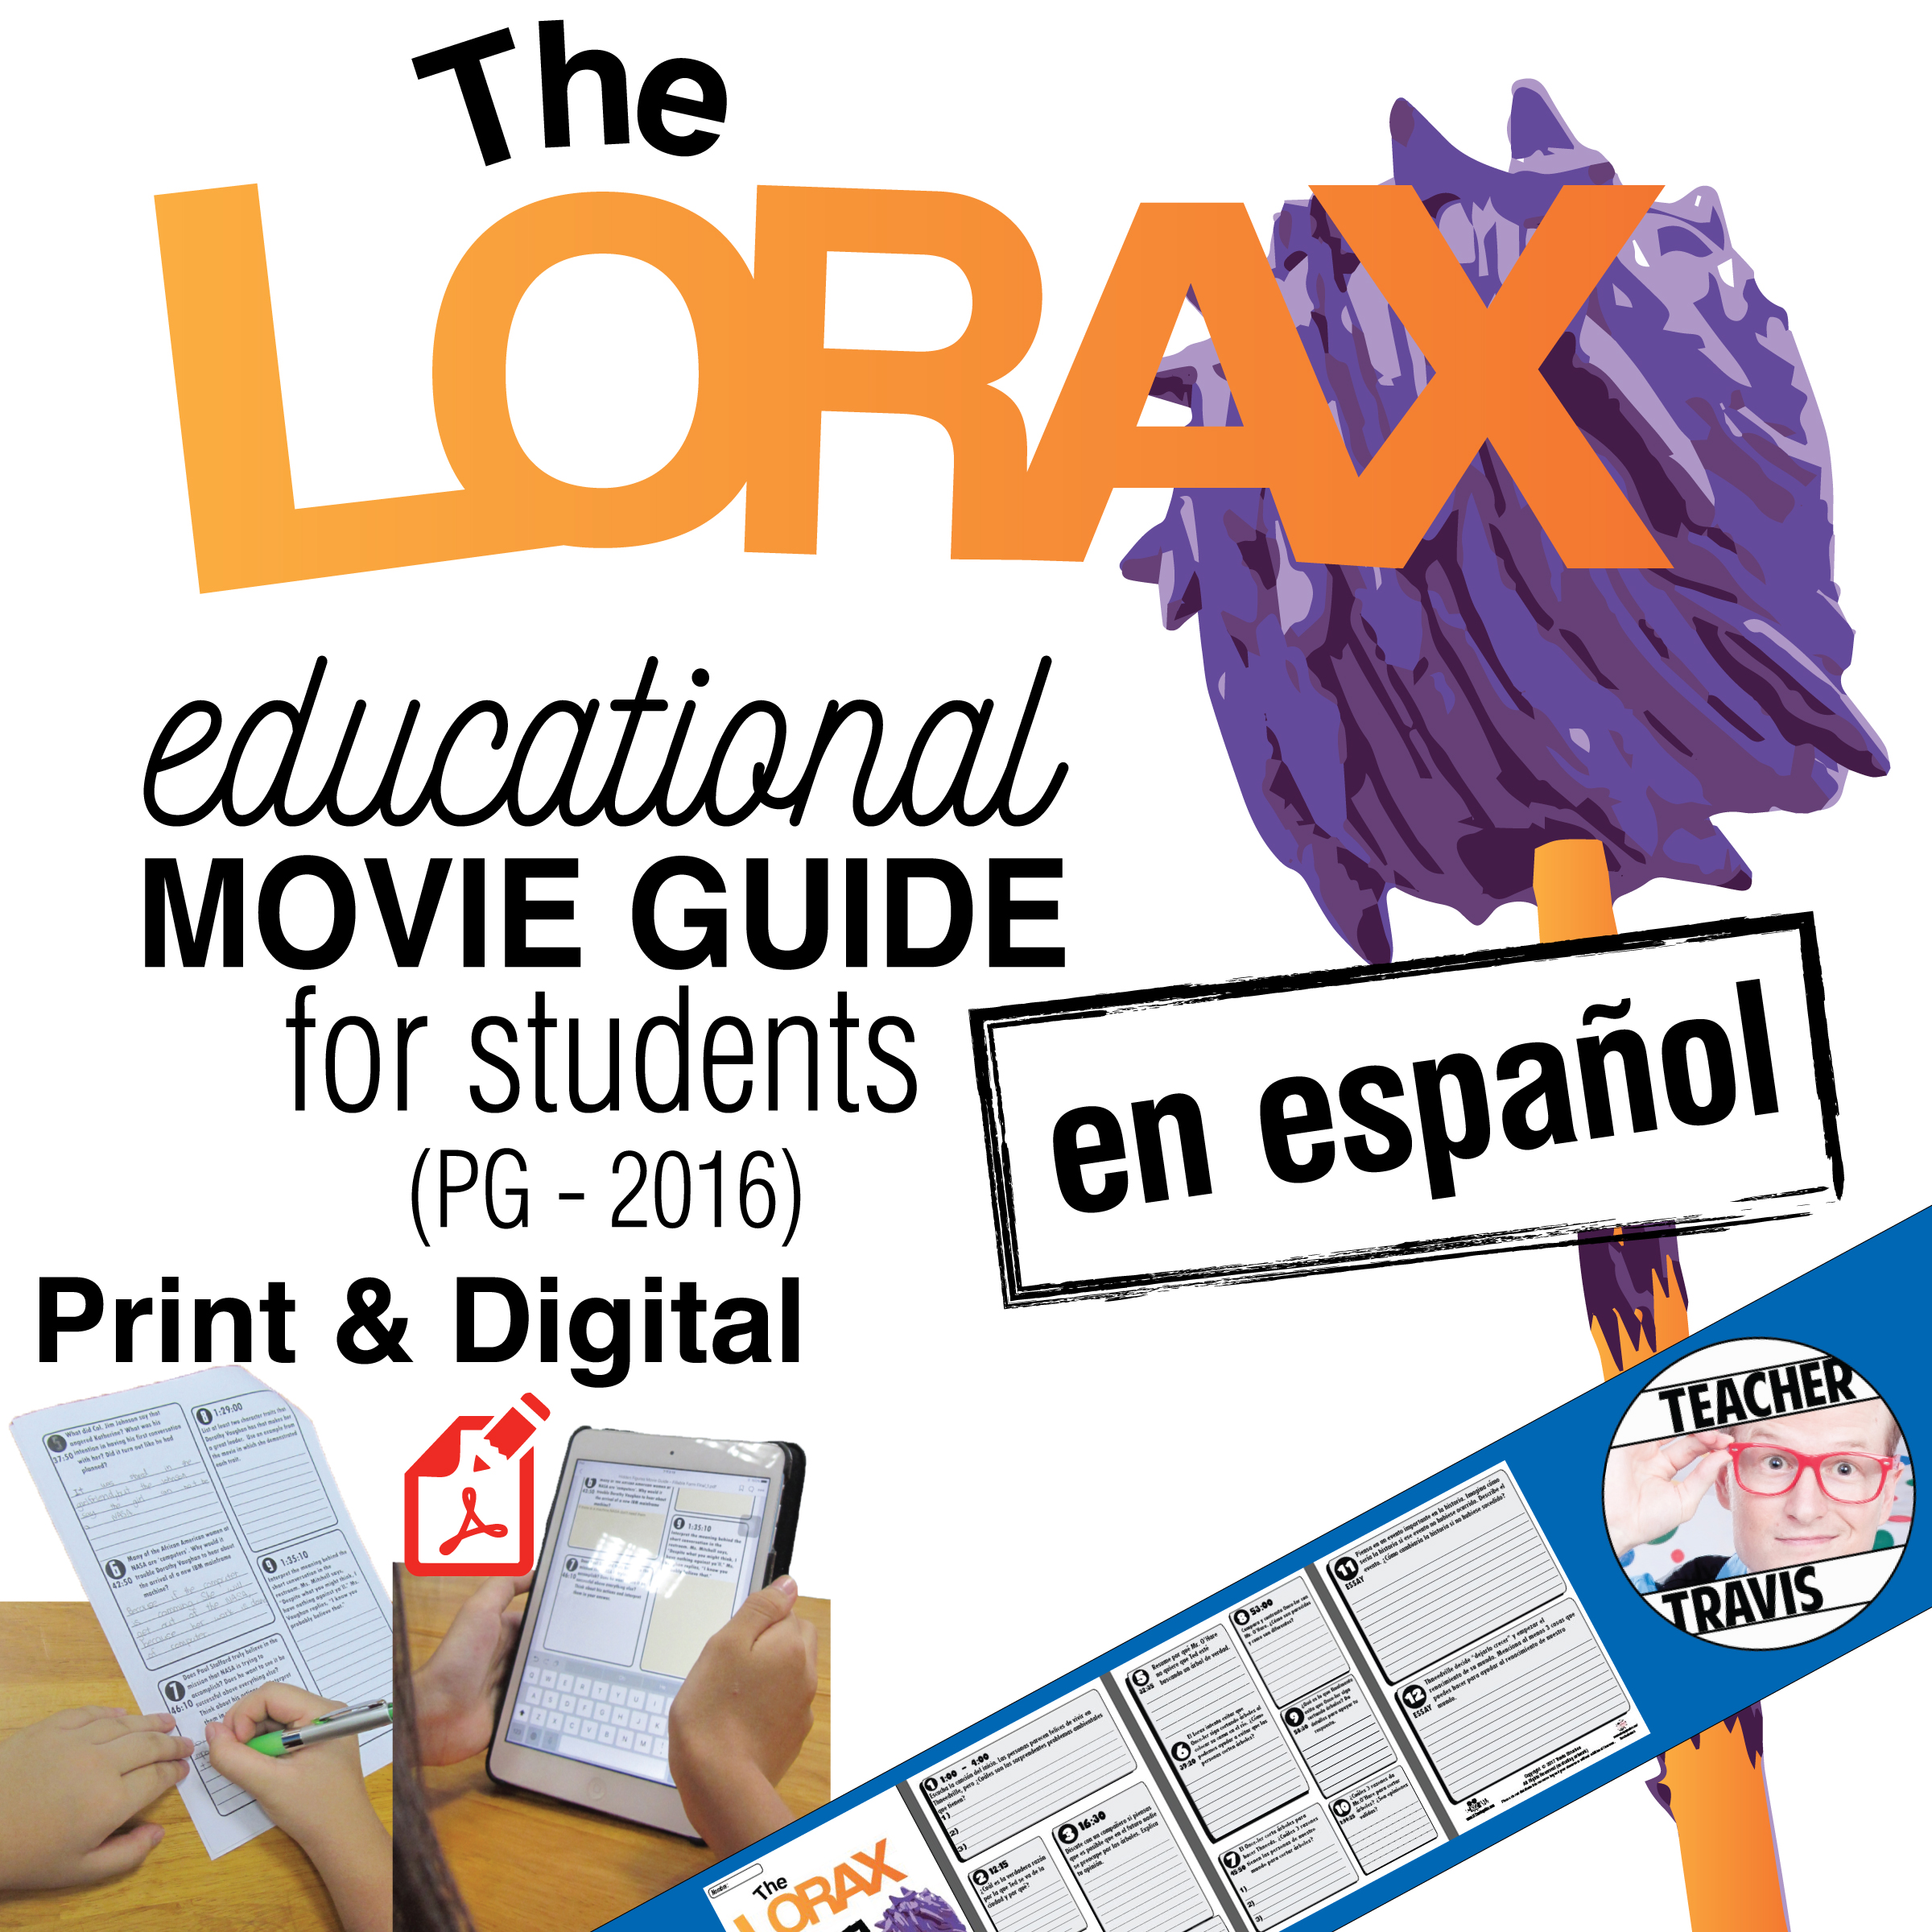 The Lorax Movie Guide - En Espanol Cover